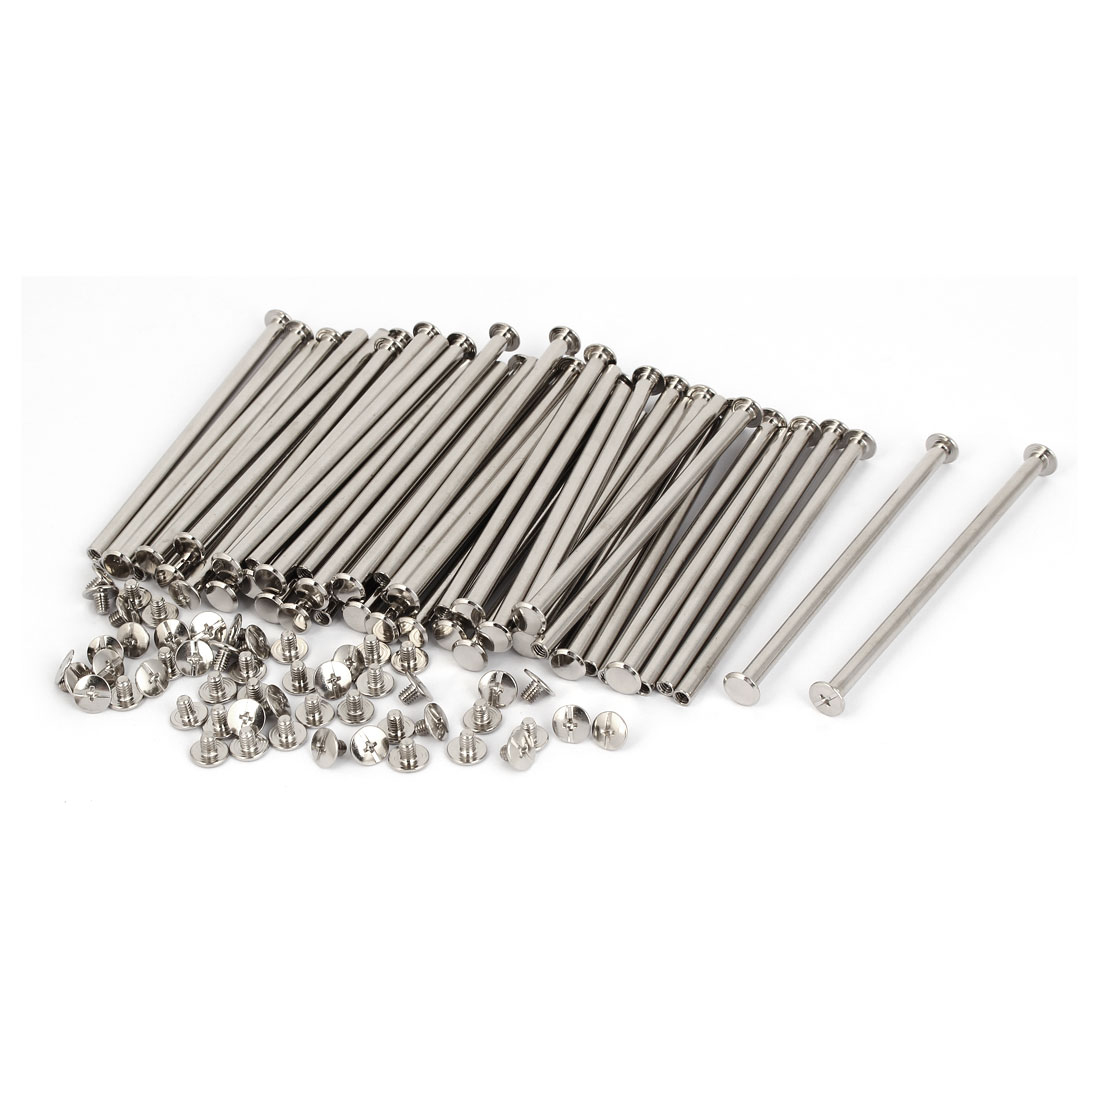 M5 x 105mm Books Albums Binding Chicago Screws Posts Silver Tone 100 Pcs